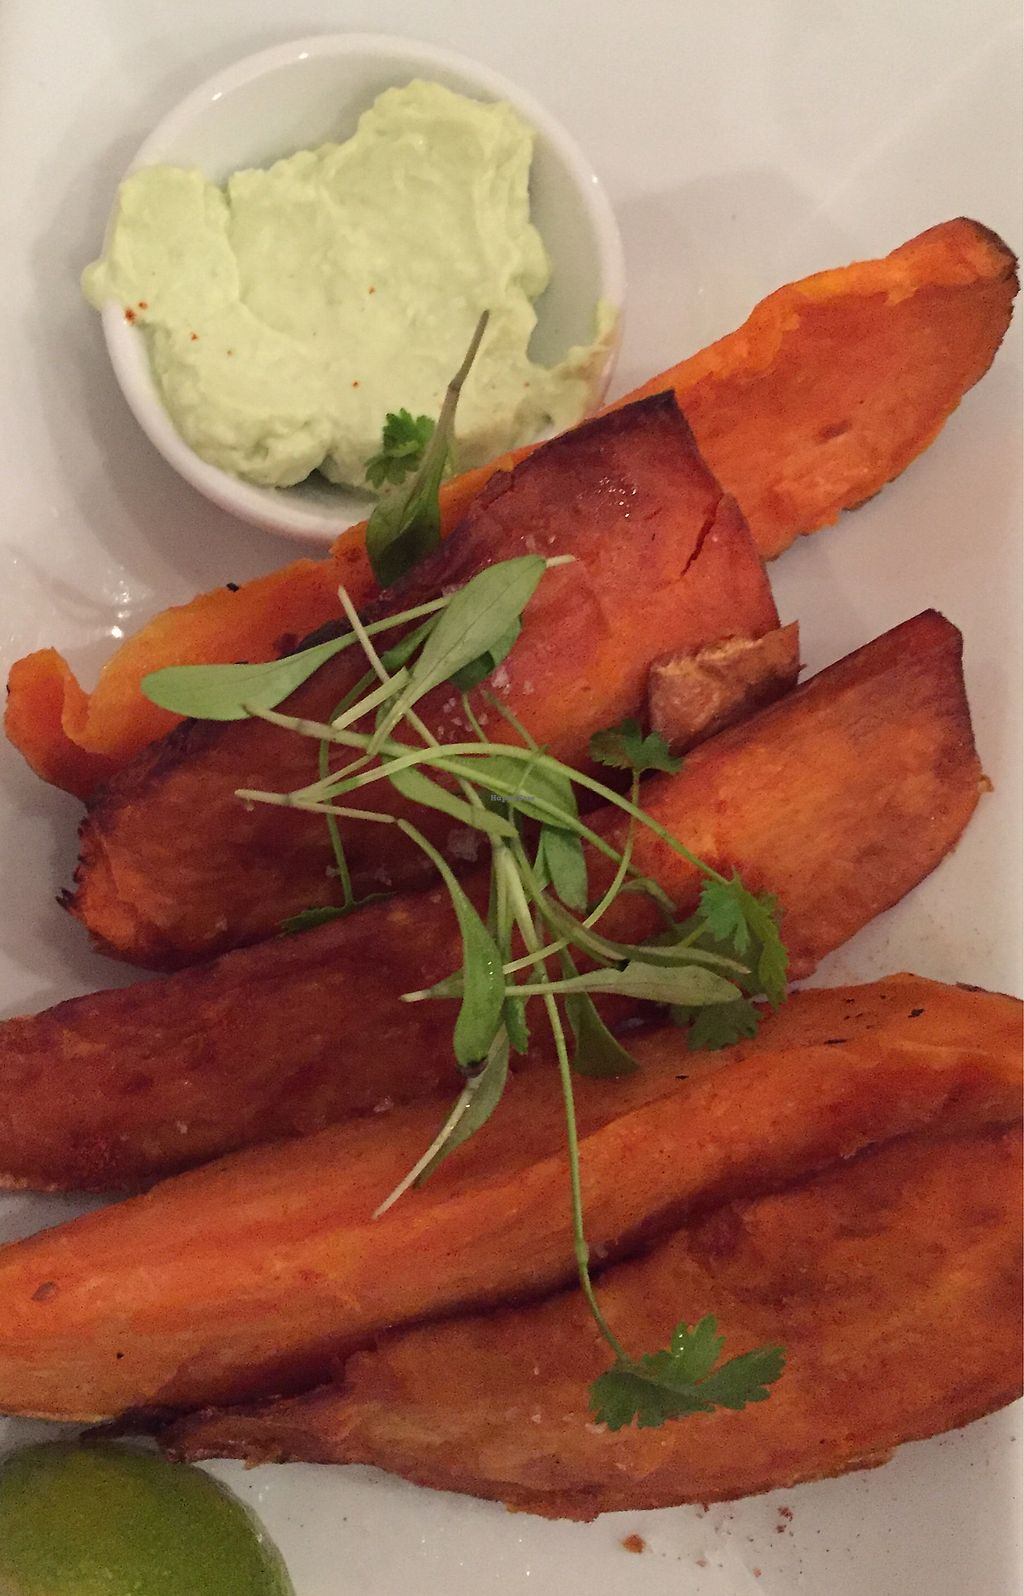 """Photo of The Gate - Hammersmith  by <a href=""""/members/profile/AnniR"""">AnniR</a> <br/>Roasted spiced sweet potato wedges  <br/> July 31, 2017  - <a href='/contact/abuse/image/698/286899'>Report</a>"""